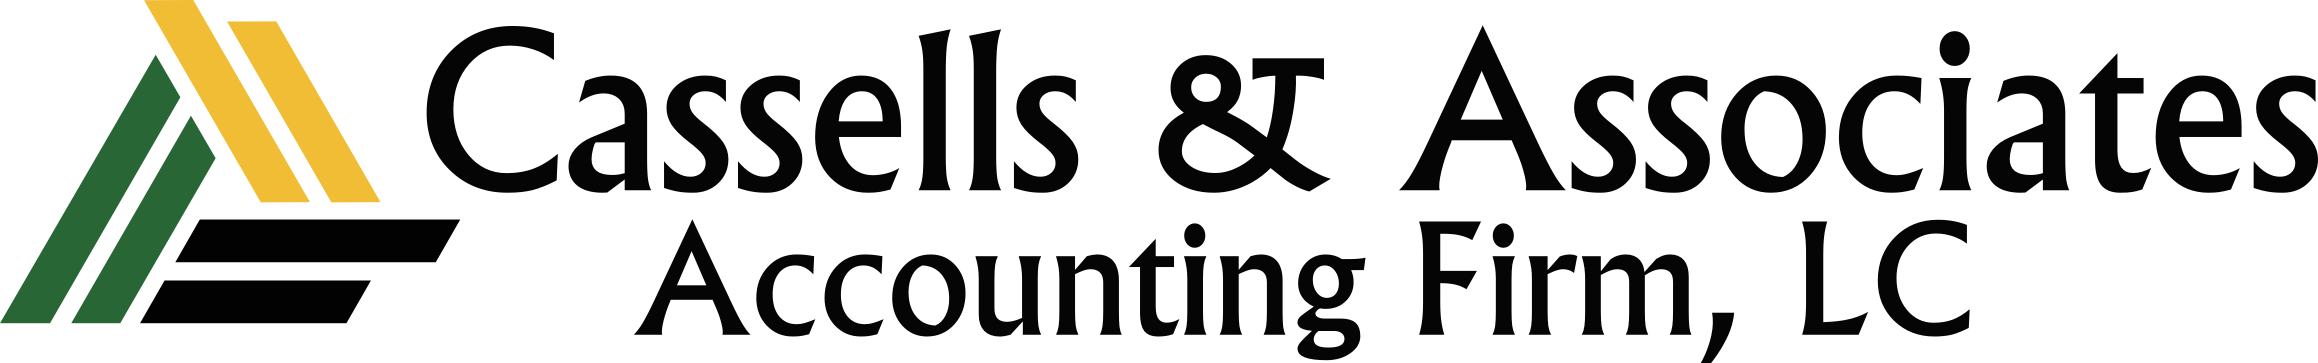 Cassells & Associates Accounting Firm